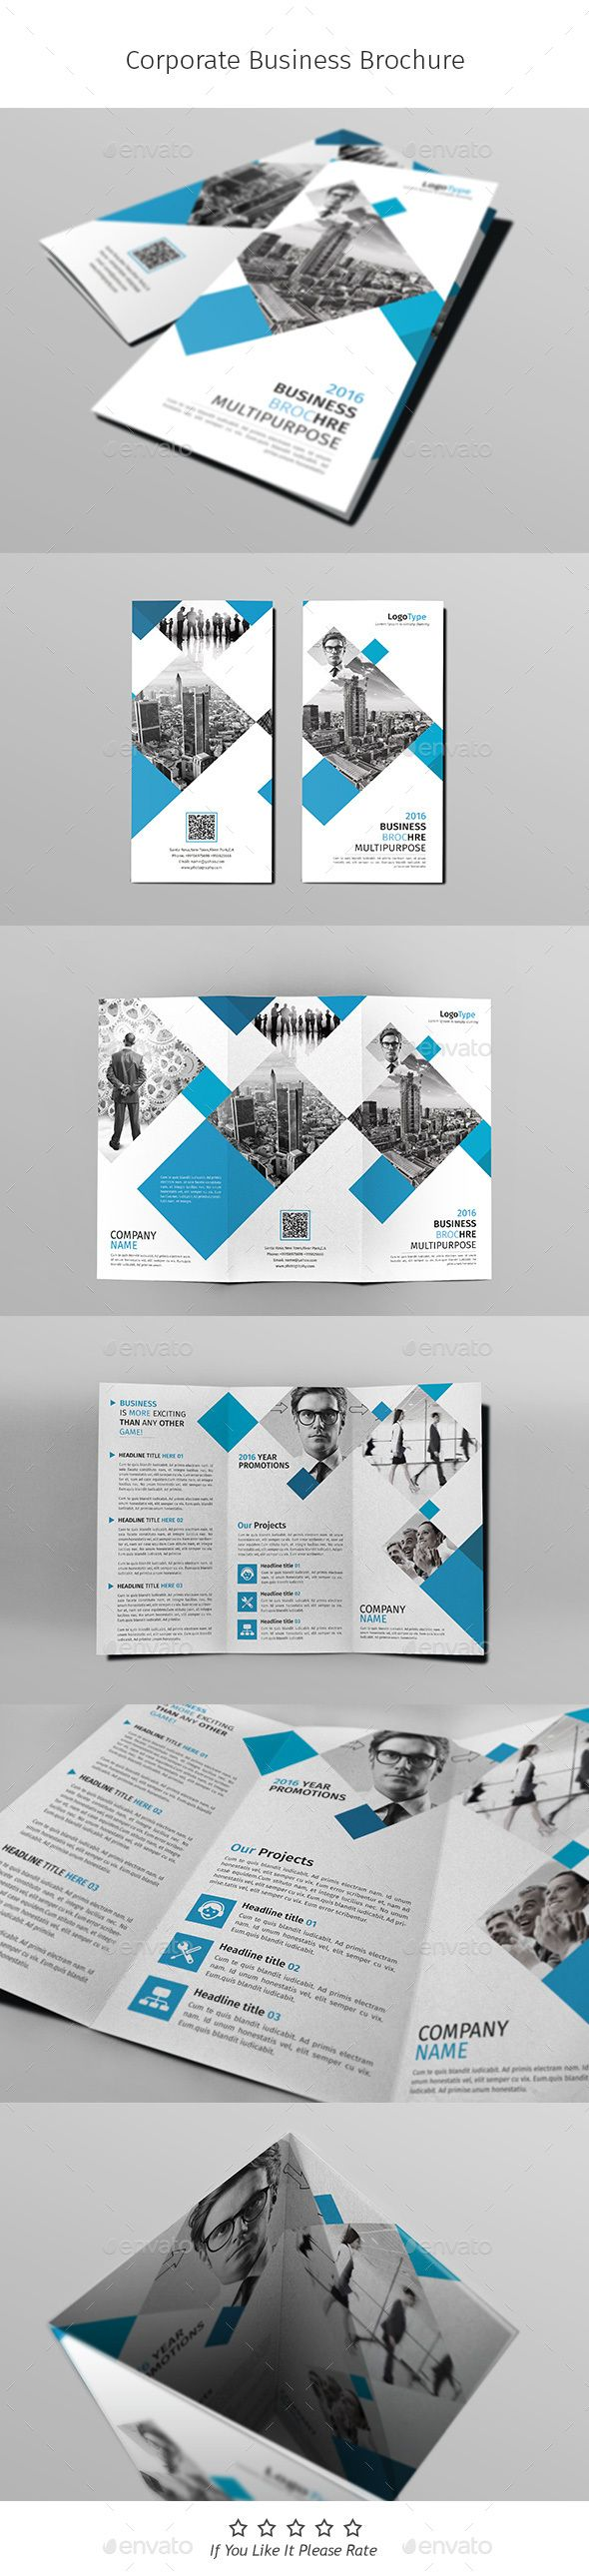 A4 Corporate Business Flyer Template PSD #design Download: http://graphicriver.net/item/a4-corporate-business-flyer-template-vol-04/13833292?ref=ksioks